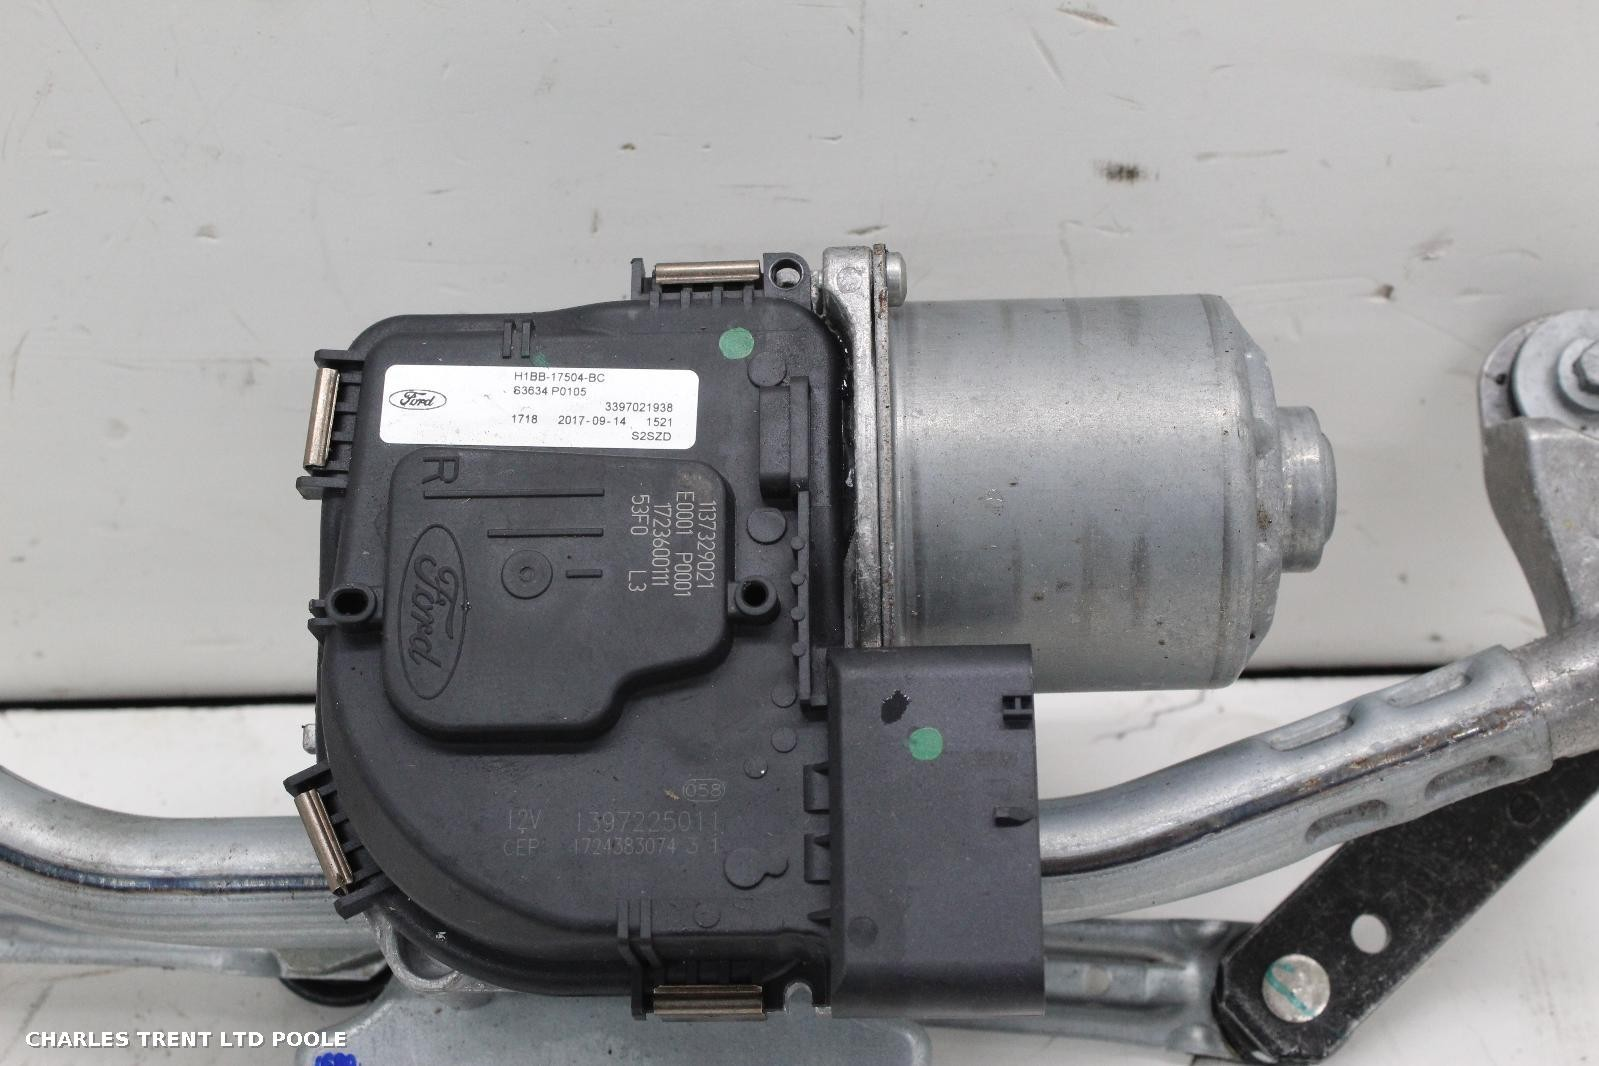 2017 - FORD - FIESTA - WIPER MOTORS (FRONT)